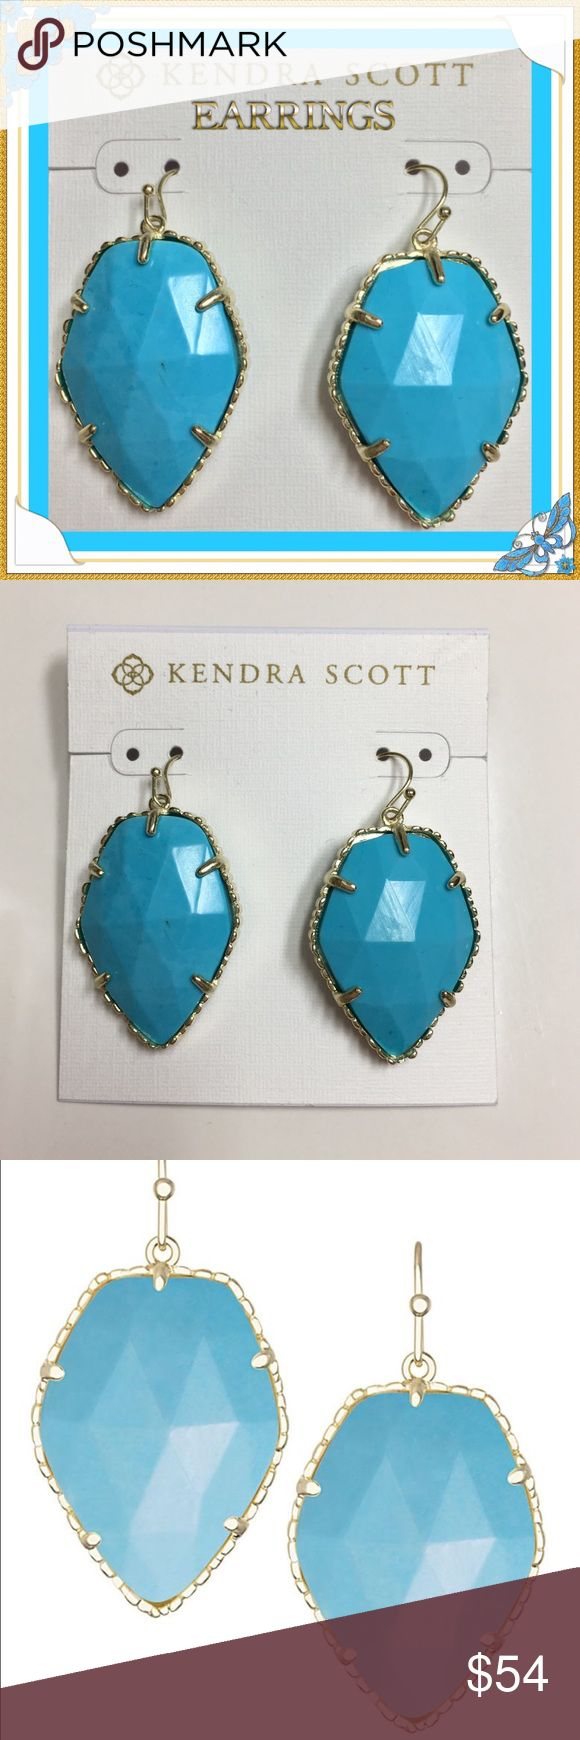 """⚡️Flash Sale!!!⚡️Kendra Scott Earrings Get these beautiful Corley Drop earrings in turquoise from Kendra Scott. Natural turquoise hues give an everyday pop to your style in these effortless drop earrings. •                           14K Gold Plated Over Brass • Size:Â 1.31""""L x 1""""W on earwire • Material: turquoise magnesite No lowballers or trades. Please use the OFFER BUTTON for pricing inquiries. Thanks!!! Kendra Scott Jewelry Earrings"""